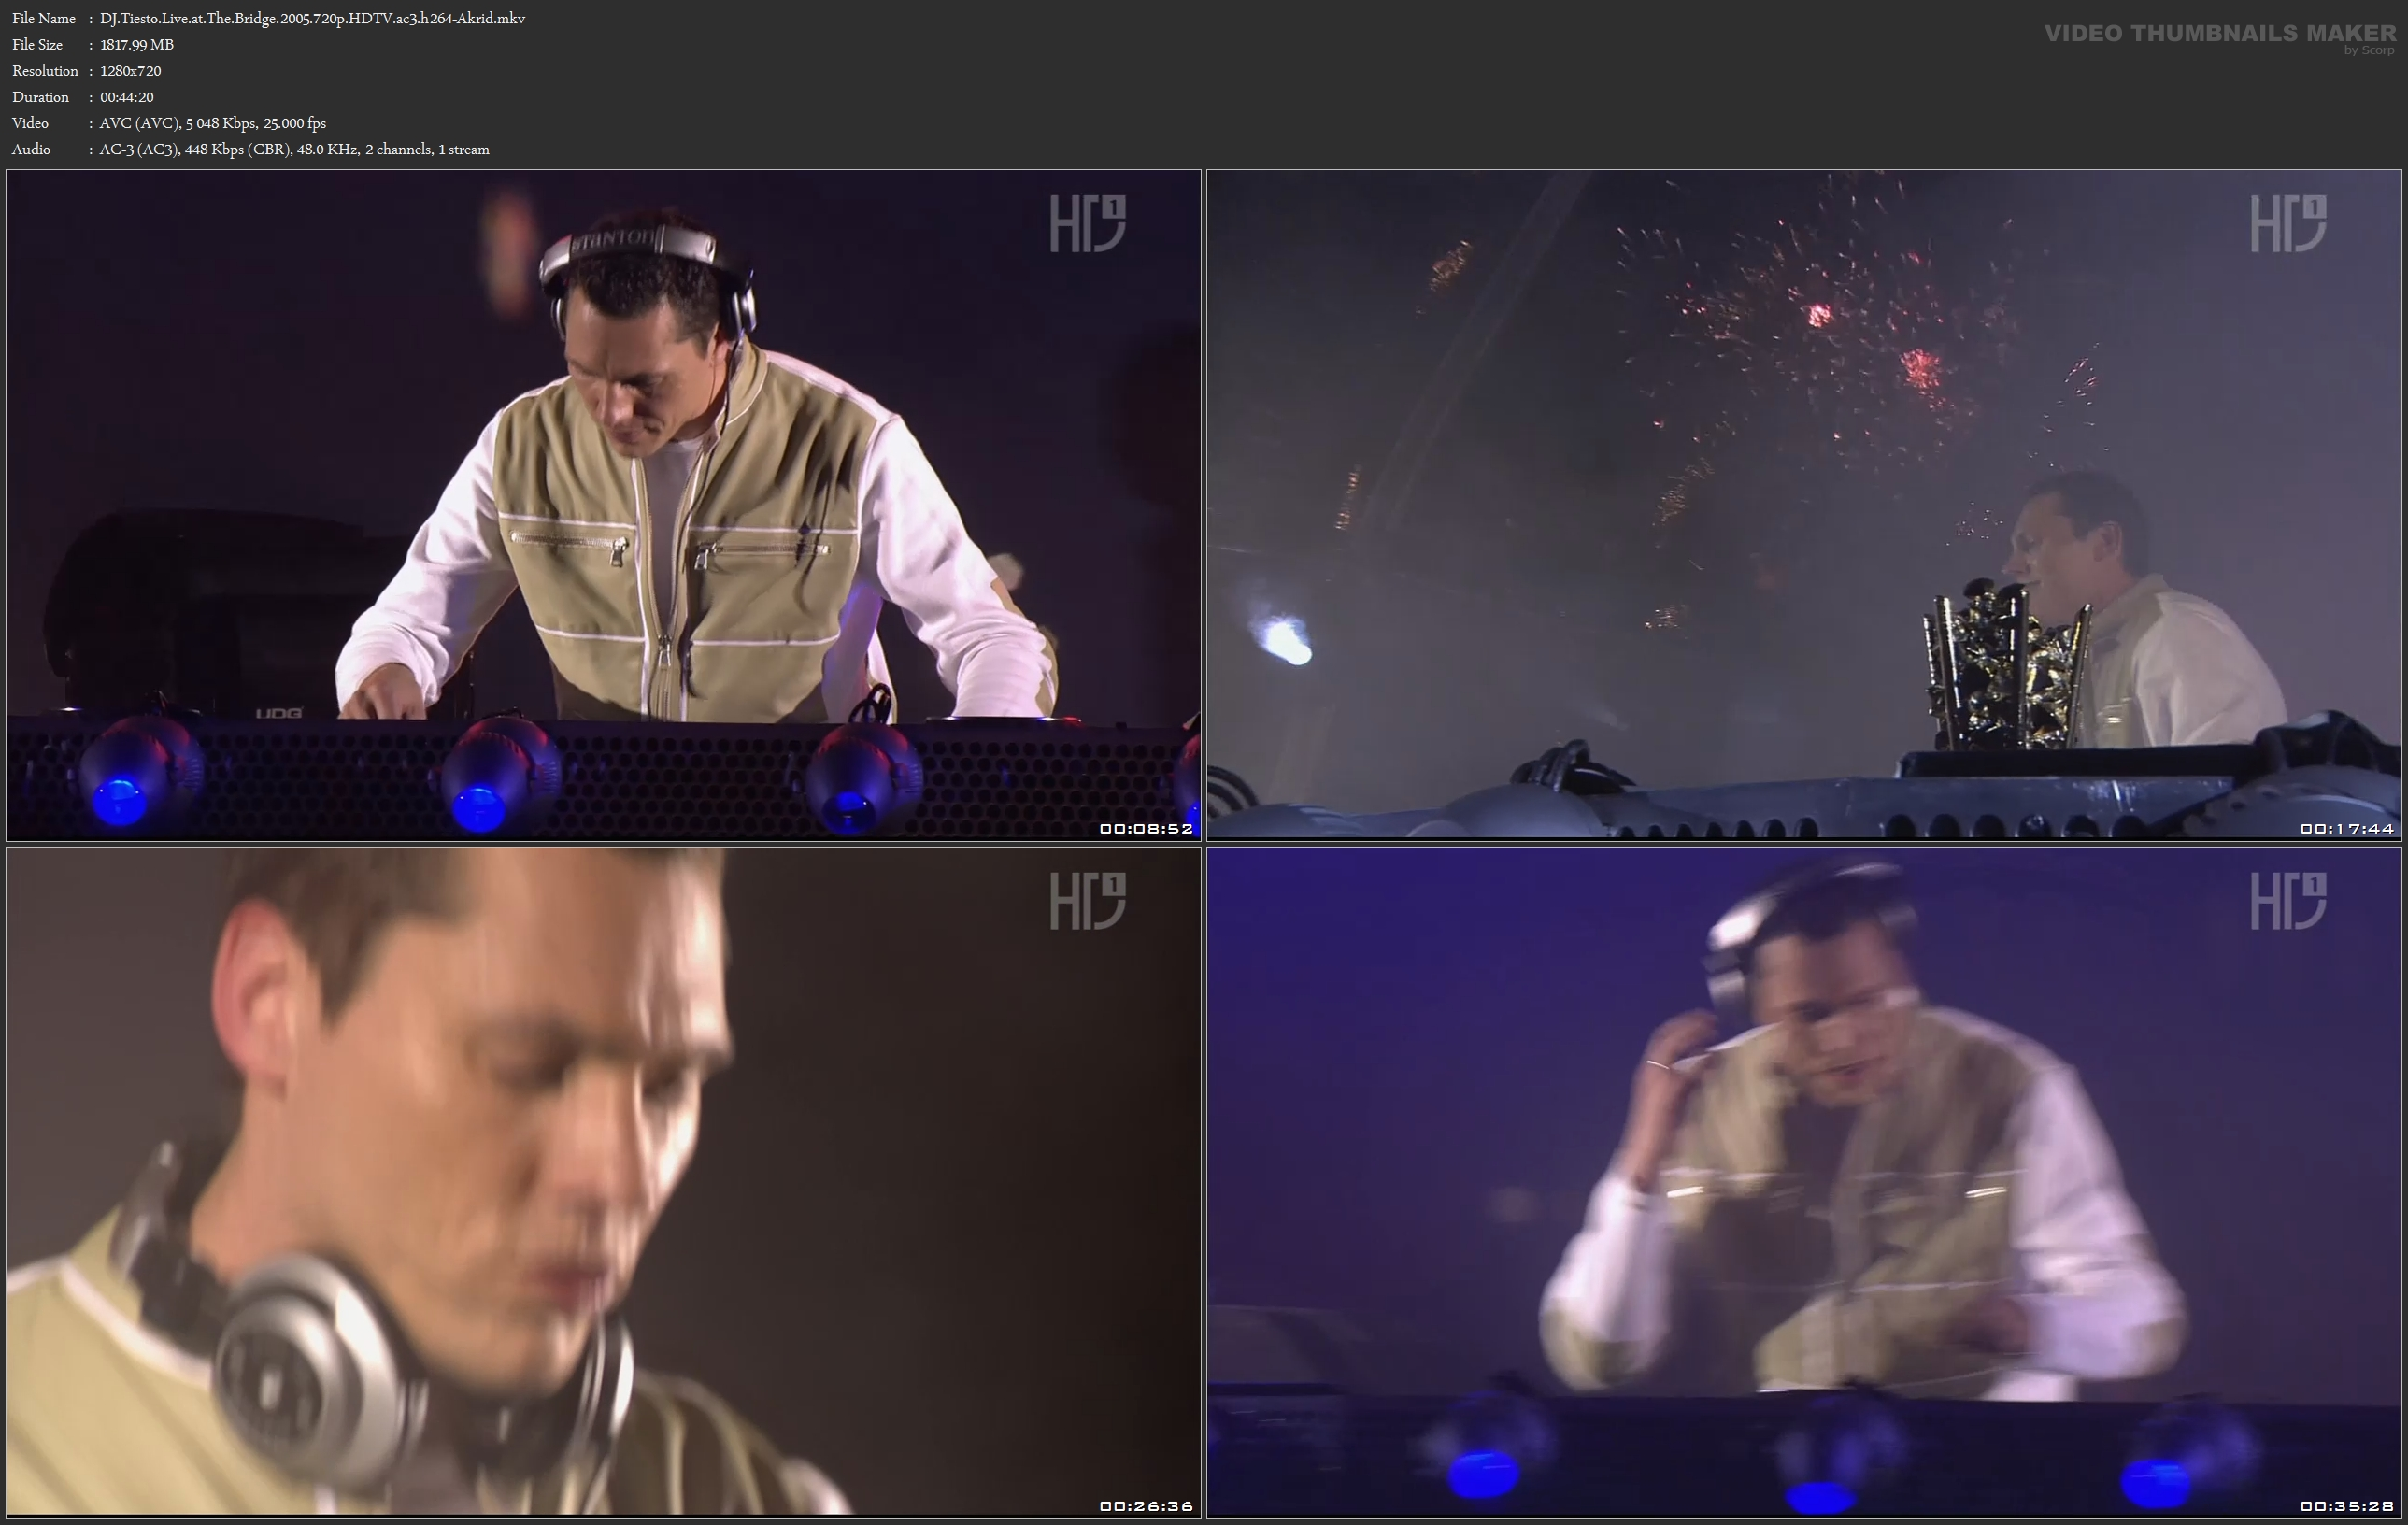 DJ Tiesto - Live at the Bridge 2005 TMF Awards [720p]